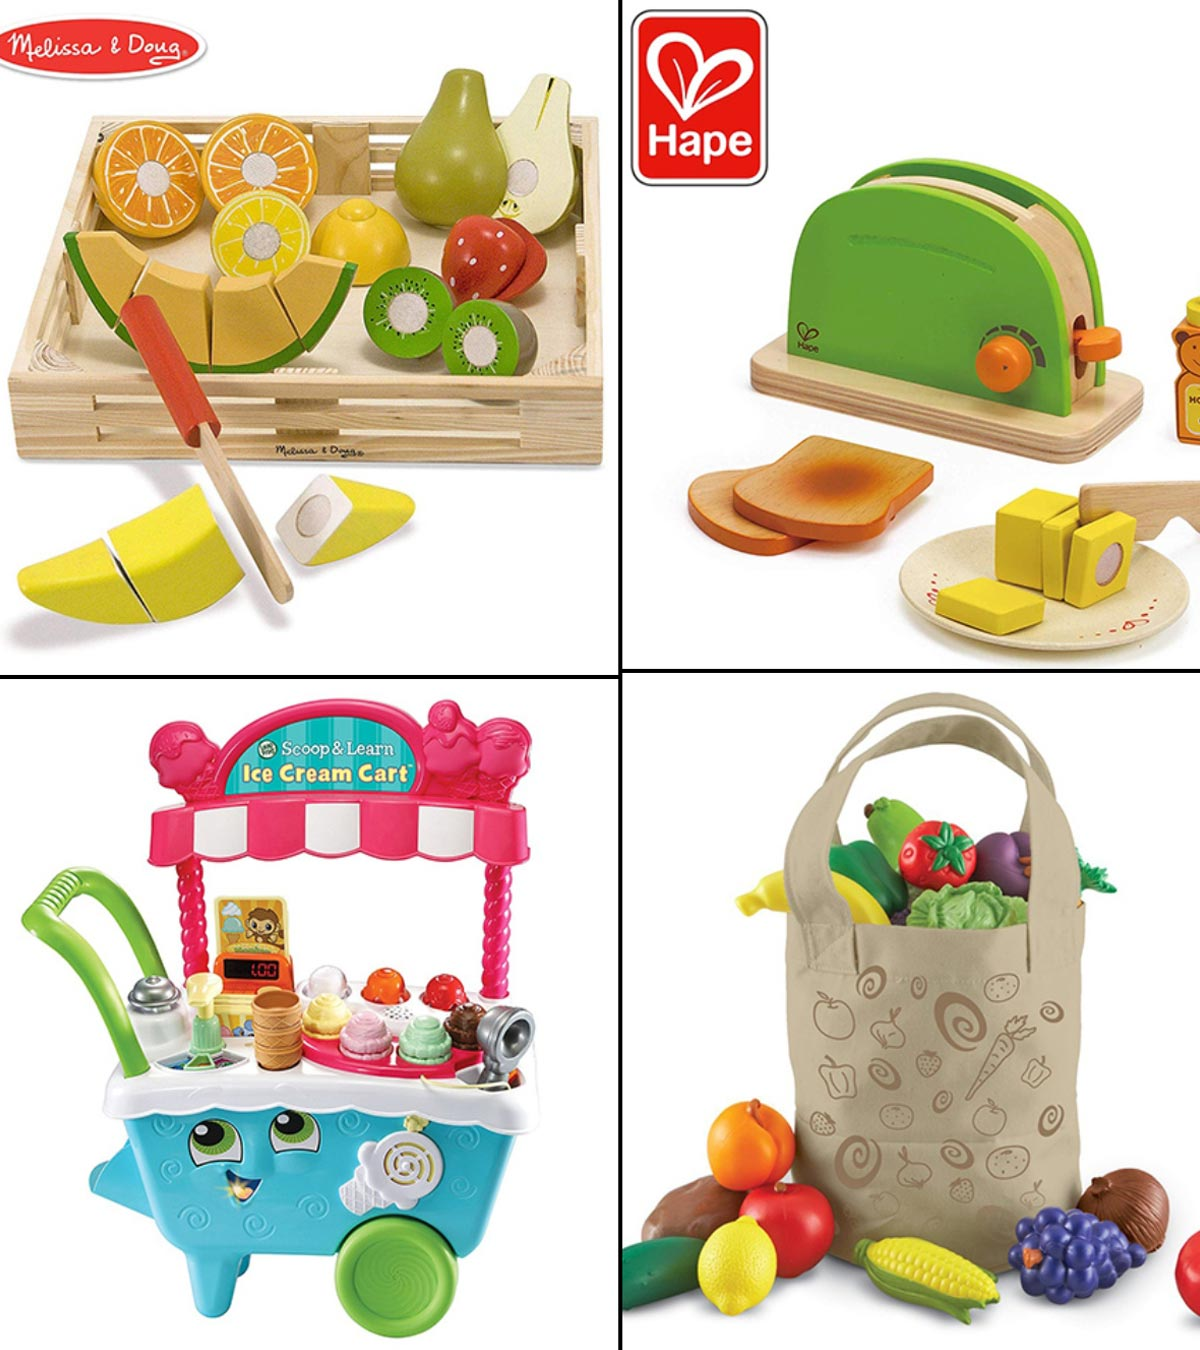 15 Best Play Food Sets To Buy For Kids In 2019